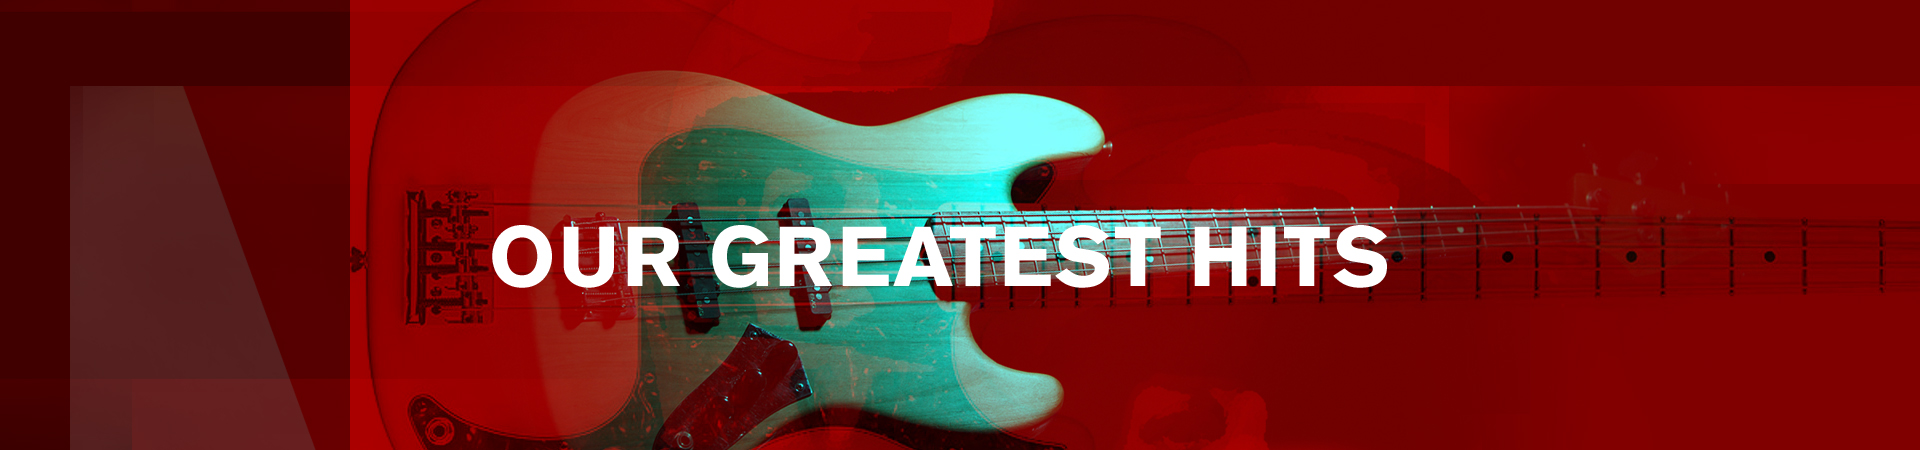 Our Greatest Hits – hero red